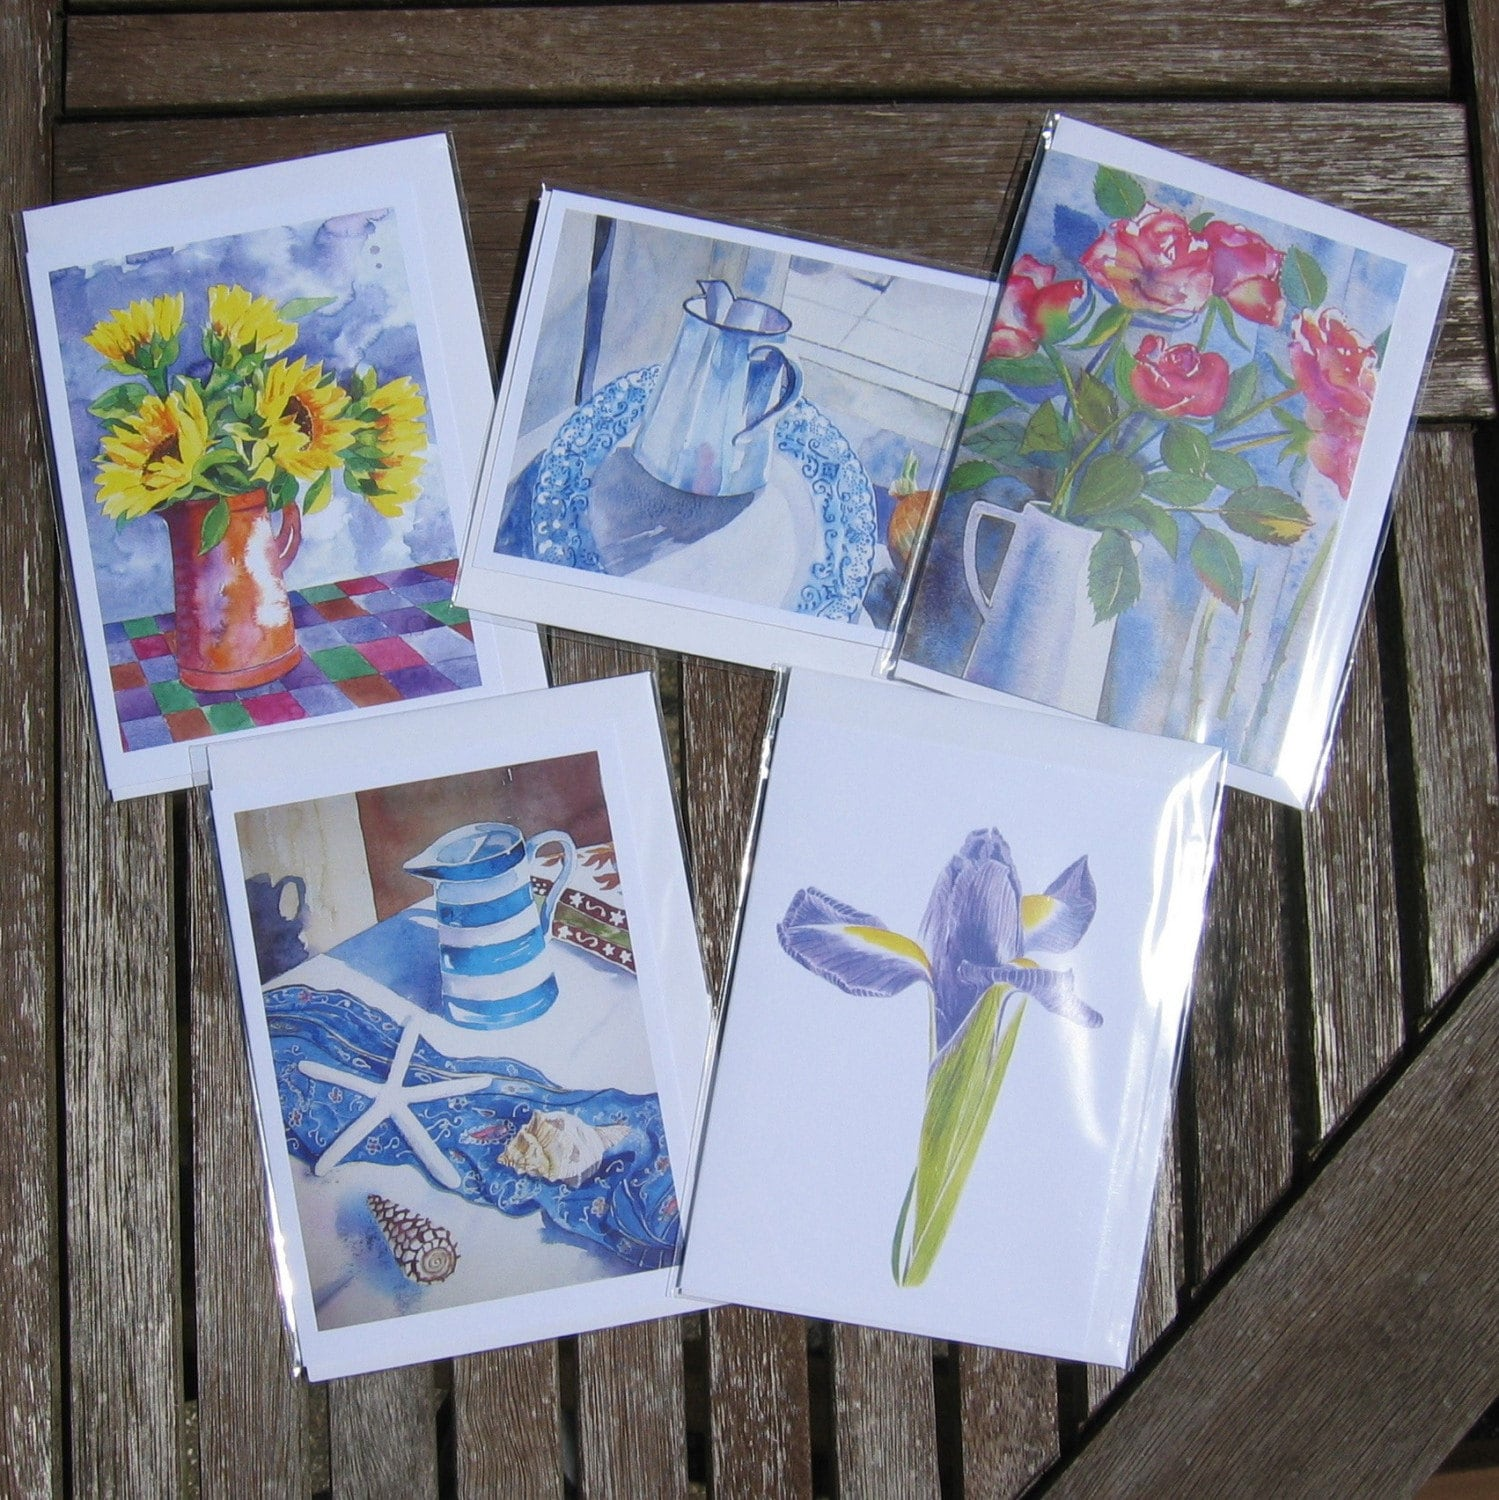 5 Greetings Cards from my Original Watercolours and/or Digital Artwork